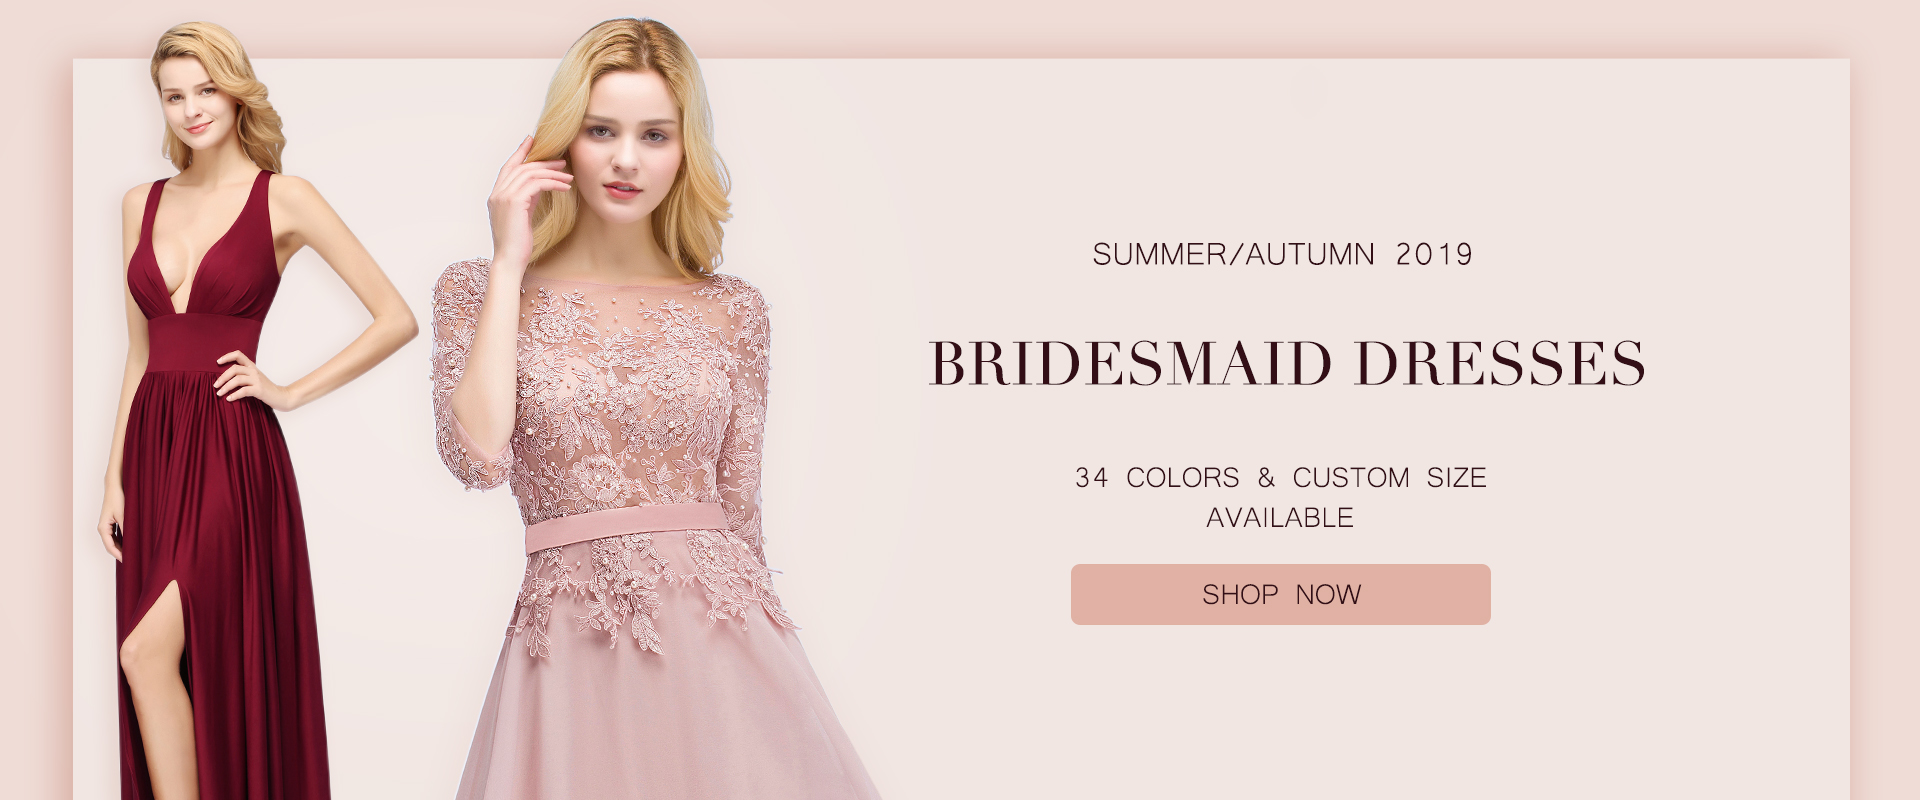 New in bridesmaid dress